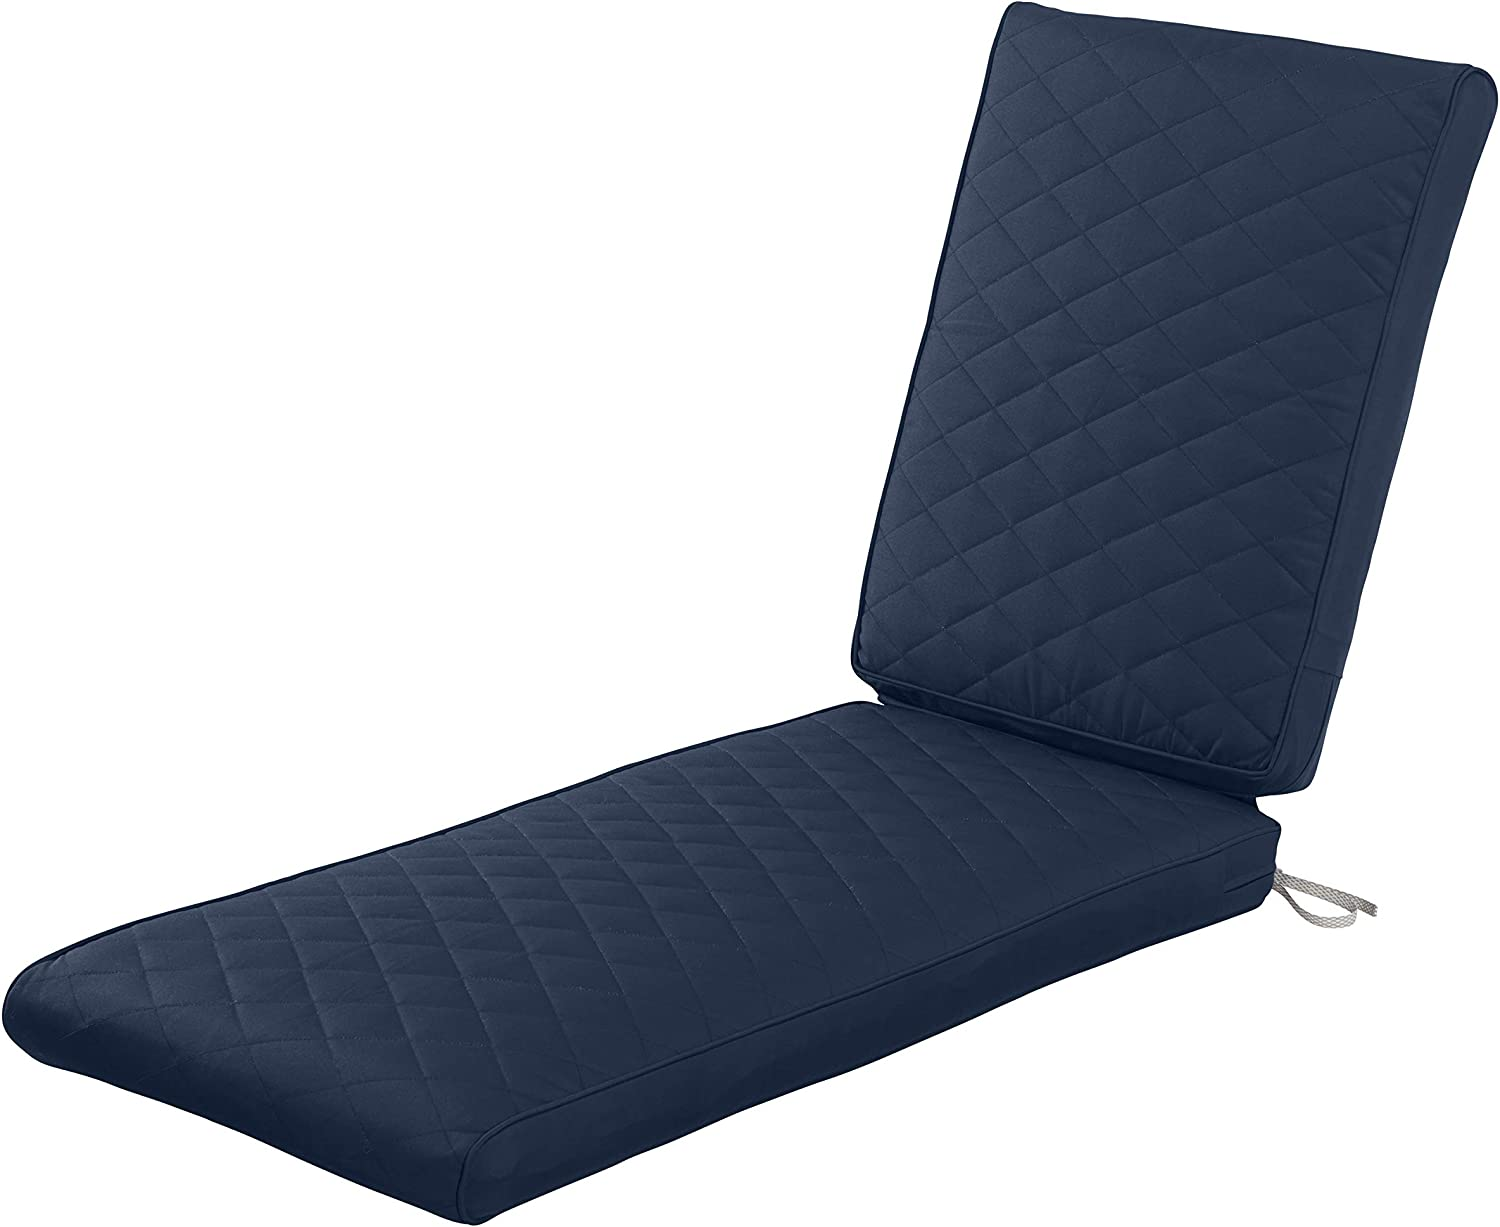 Classic Accessories Montlake Water-Resistant 80 x 26 x 3 Inch Rectangle Patio Quilted Chaise Lounge Cushion, Navy